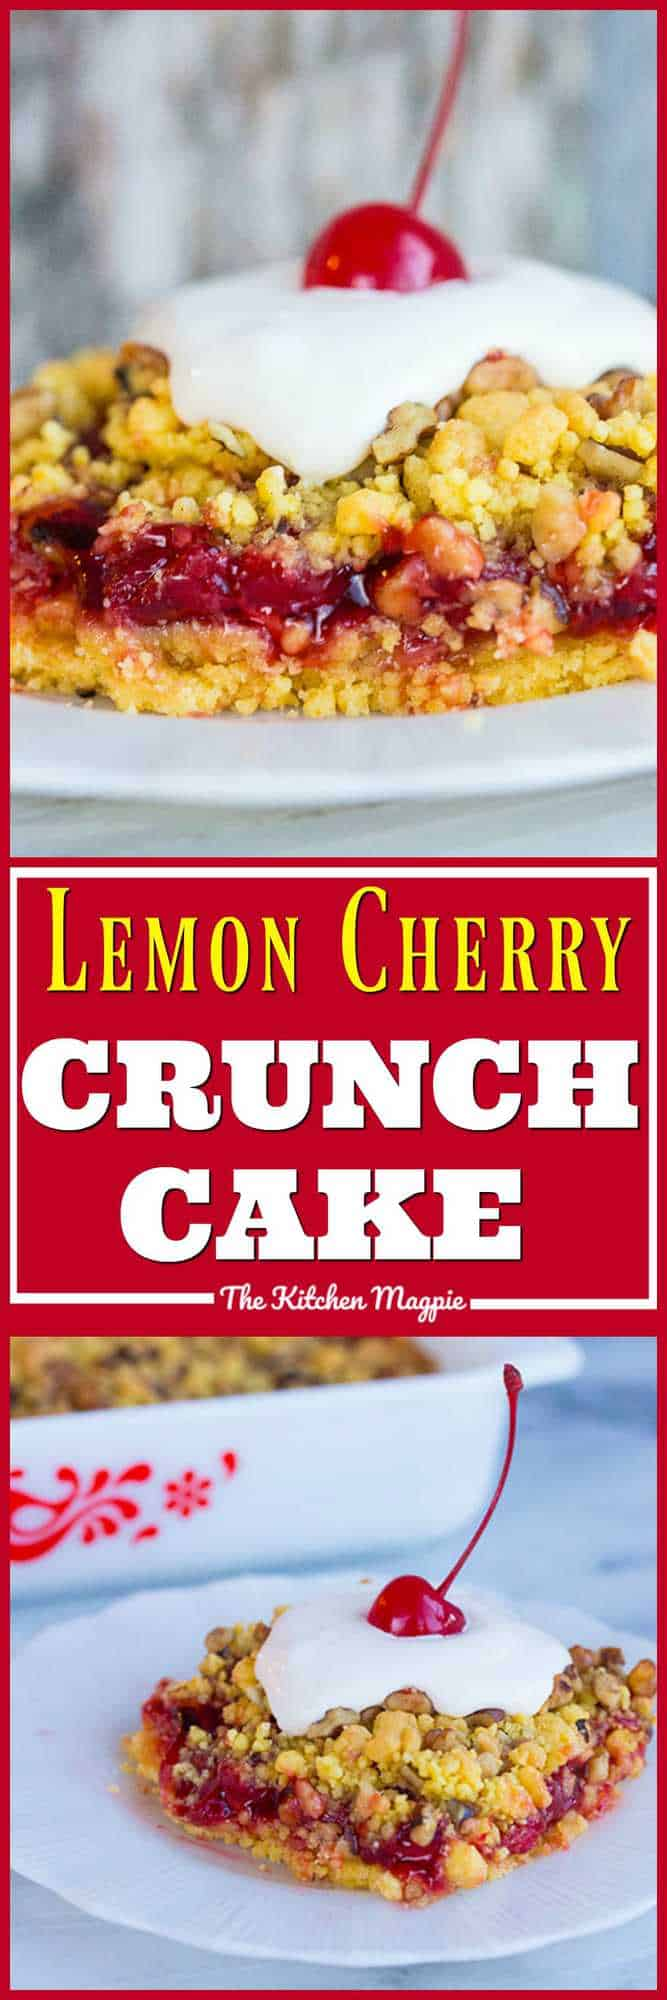 This 4 ingredient Lemon Cherry Crunch Cake is crazy easy and super delicious! Recipe from @kitchenmagpie #cake #baking #lemon #cherry #recipes #easy